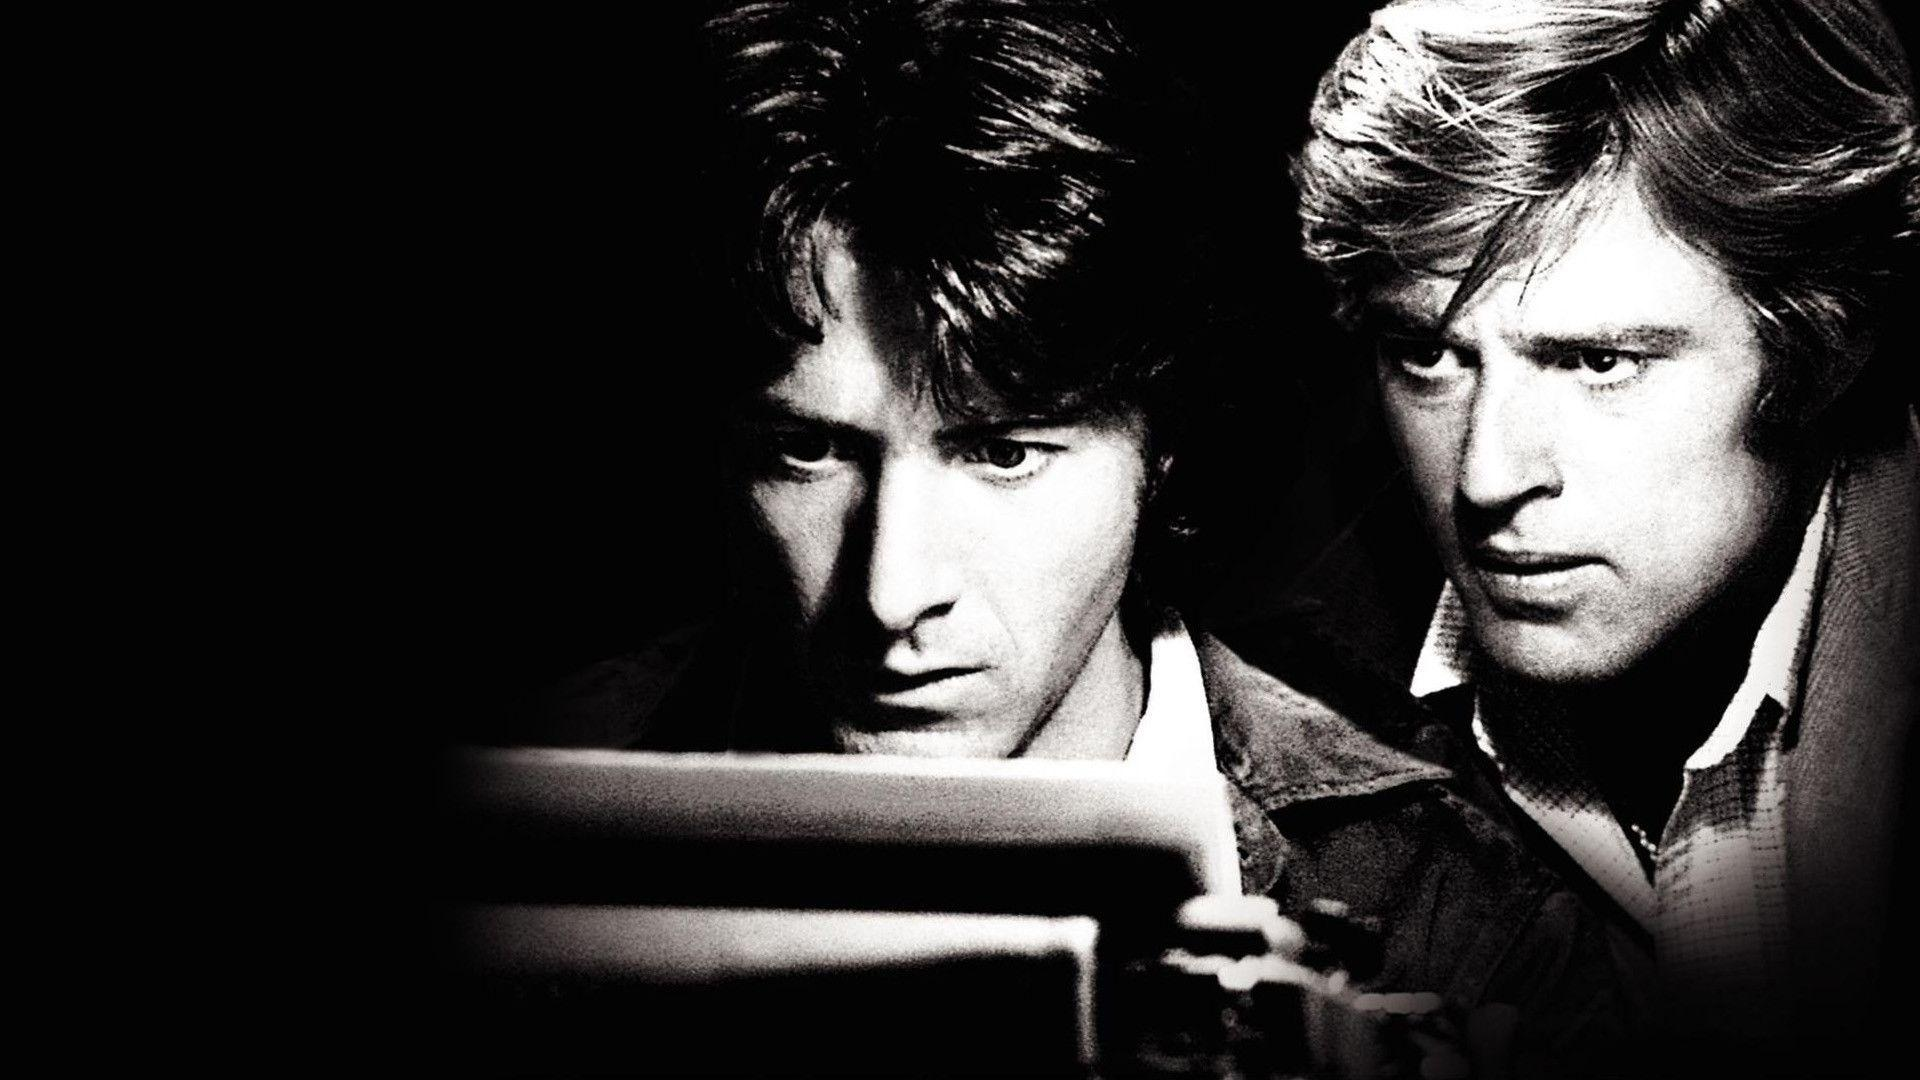 COMING: ALL THE PRESIDENT'S MEN, THE DOCUMENTARY | Studio Briefing